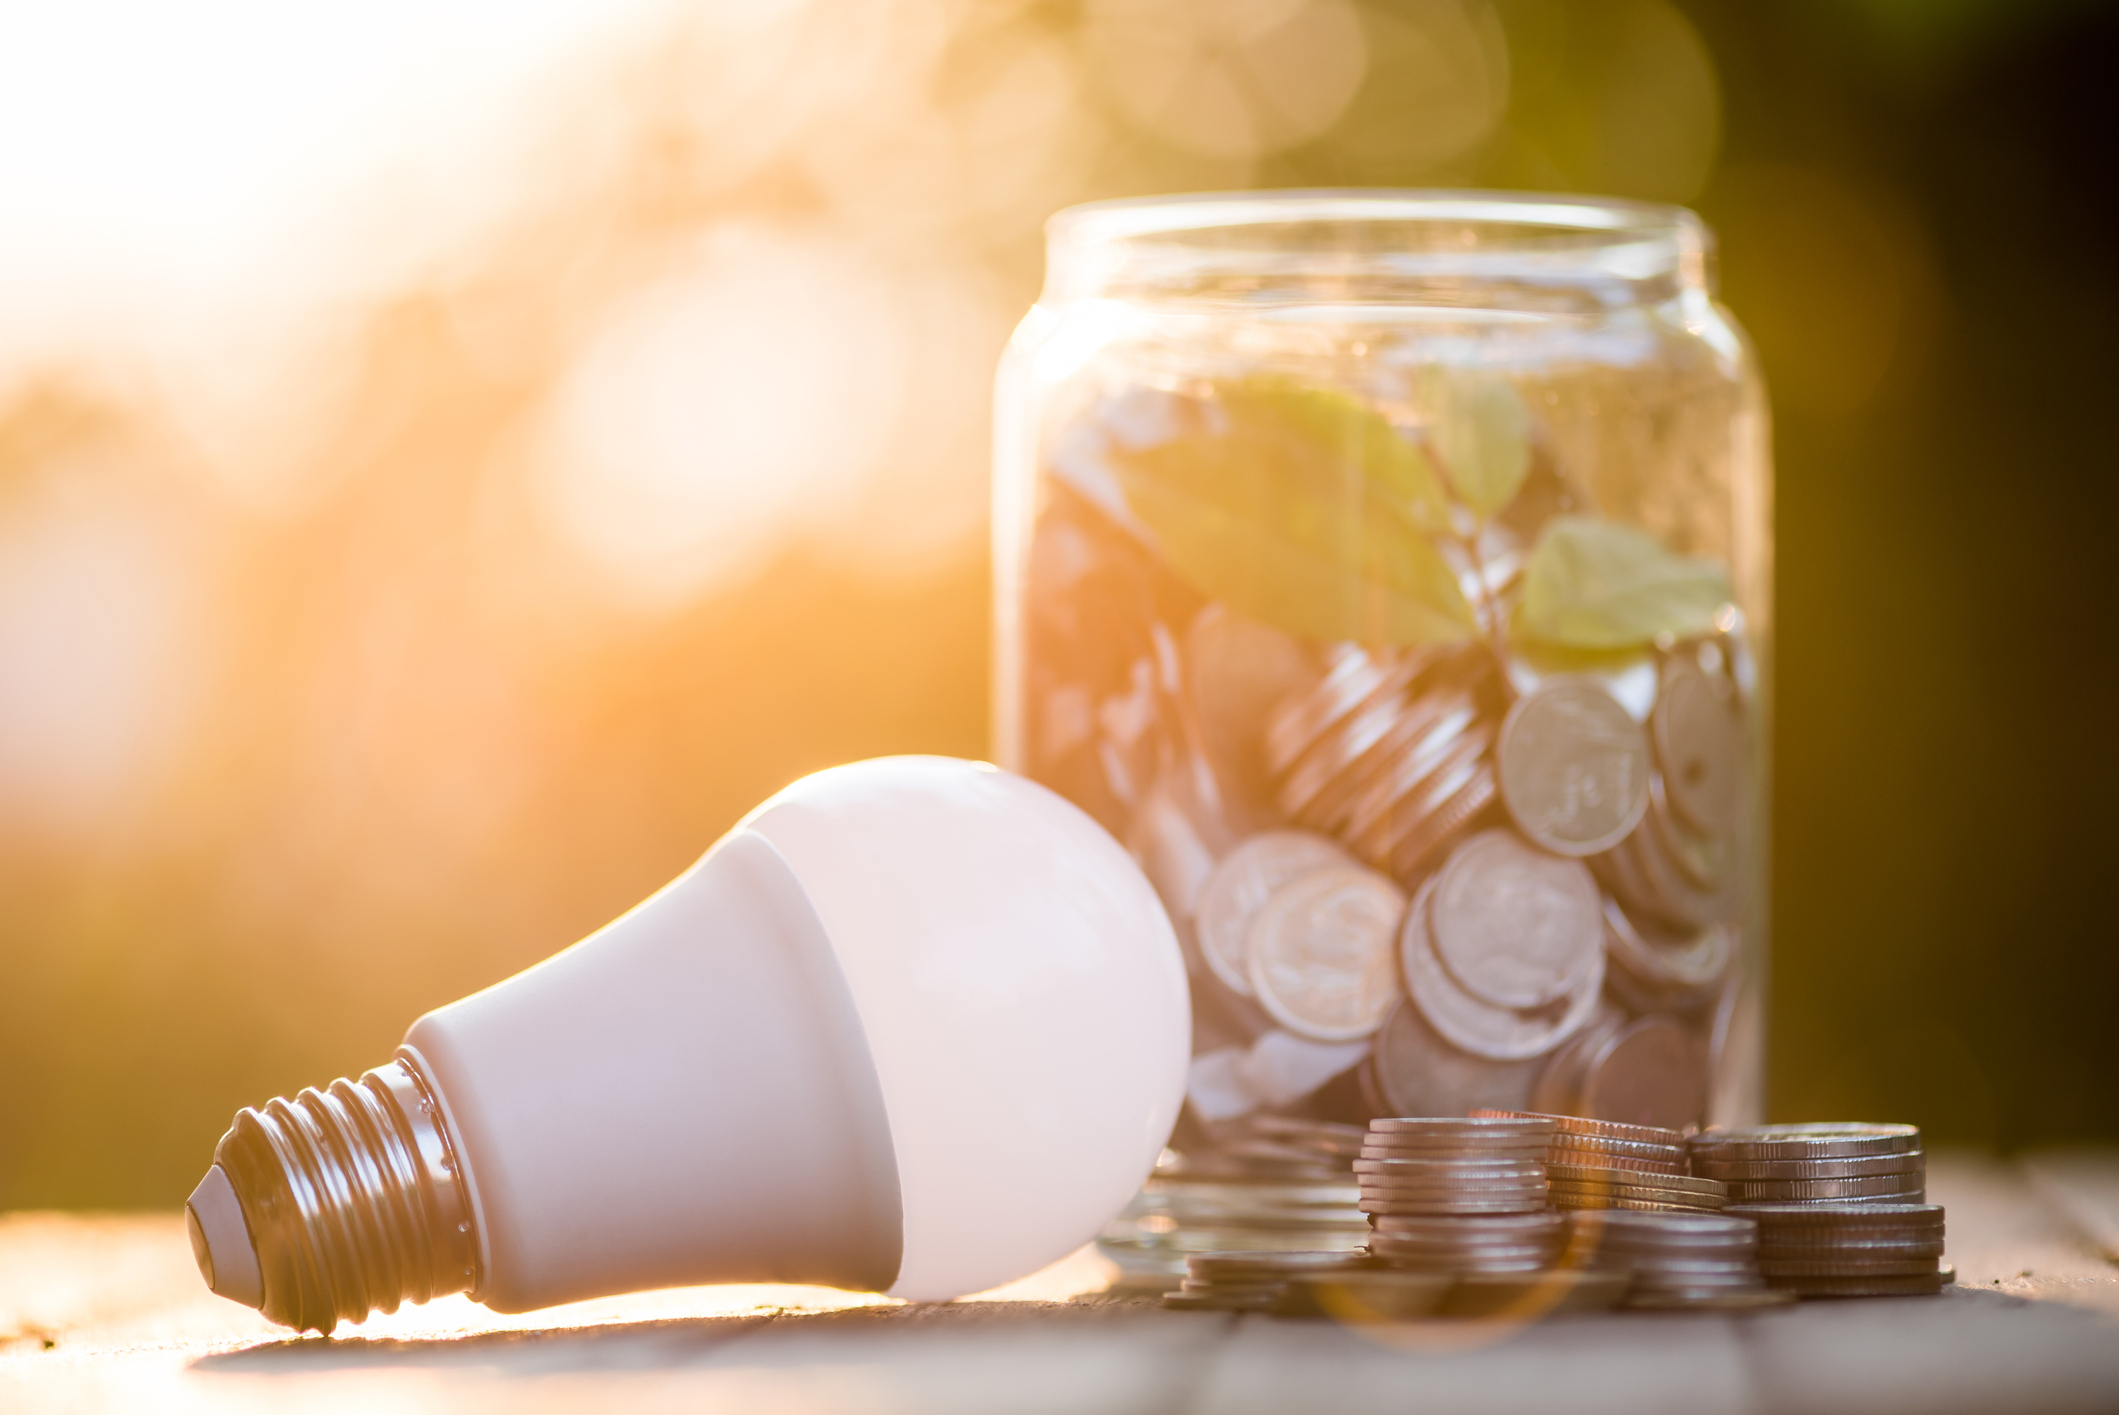 Simple Ways to Reduce Costs Through Energy Savings